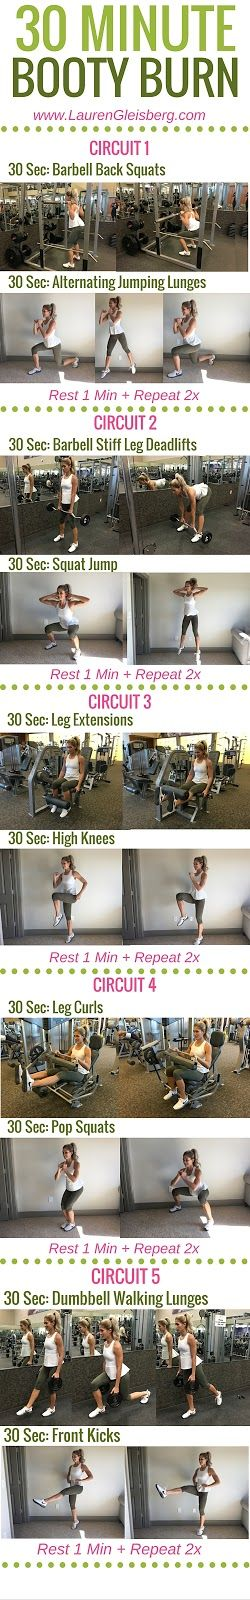 30 MINUTE BOOTY BURN WORKOUT (gym version) - Day 1 of LG Fitmas Challenge   www.LaurenGleisberg.com